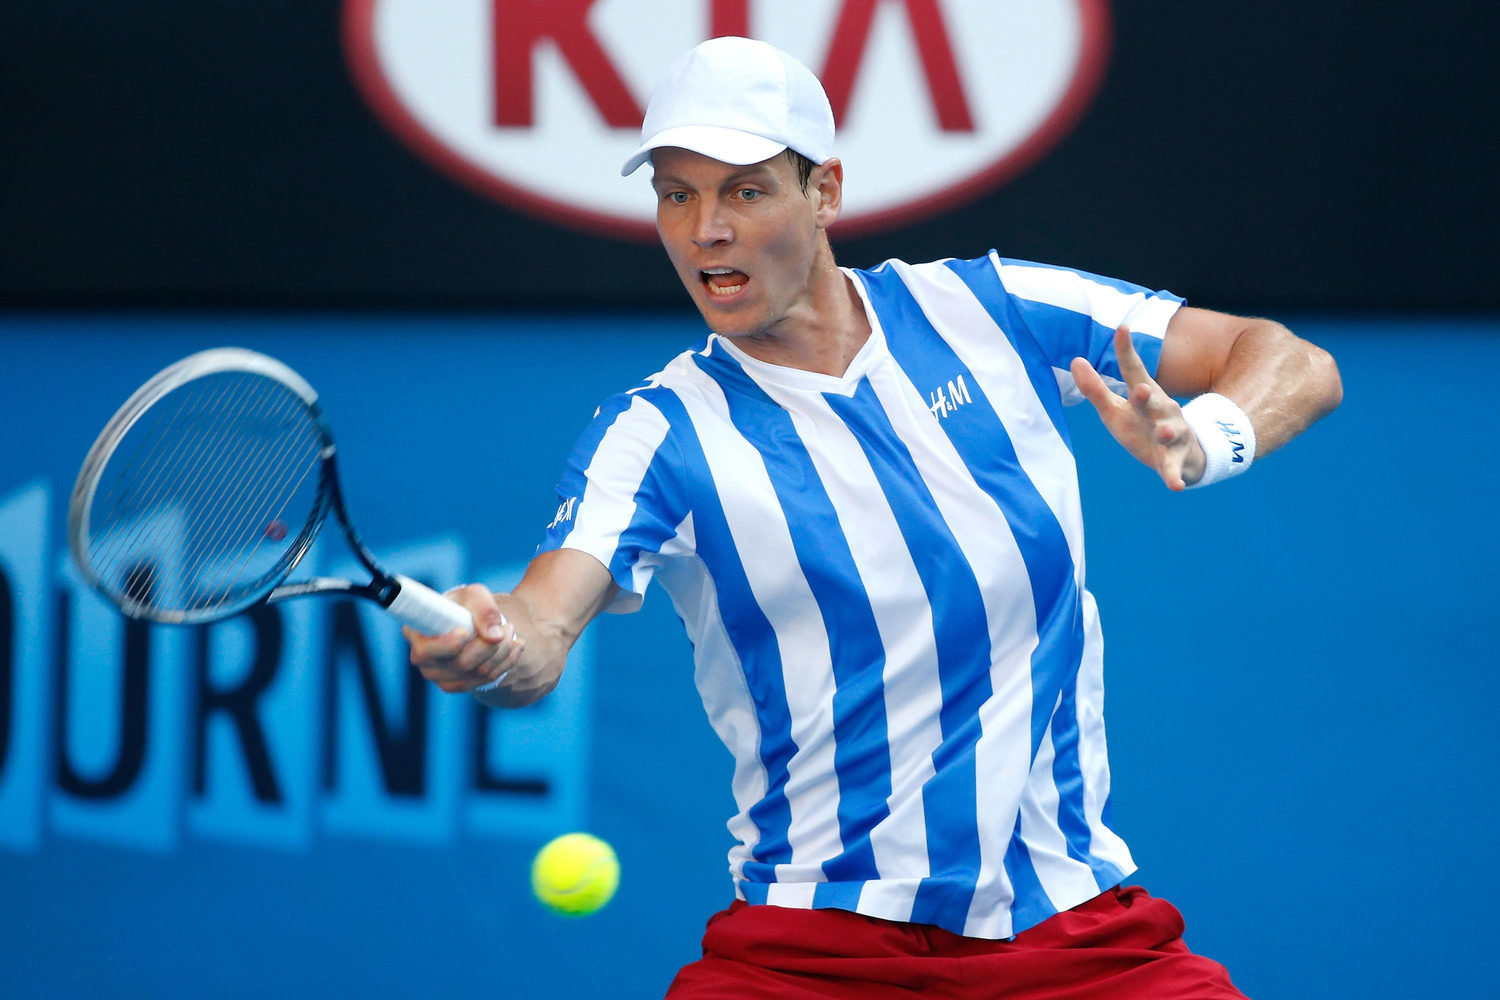 Sean likes the chances of Tomas Berdych in Rotterdam this week